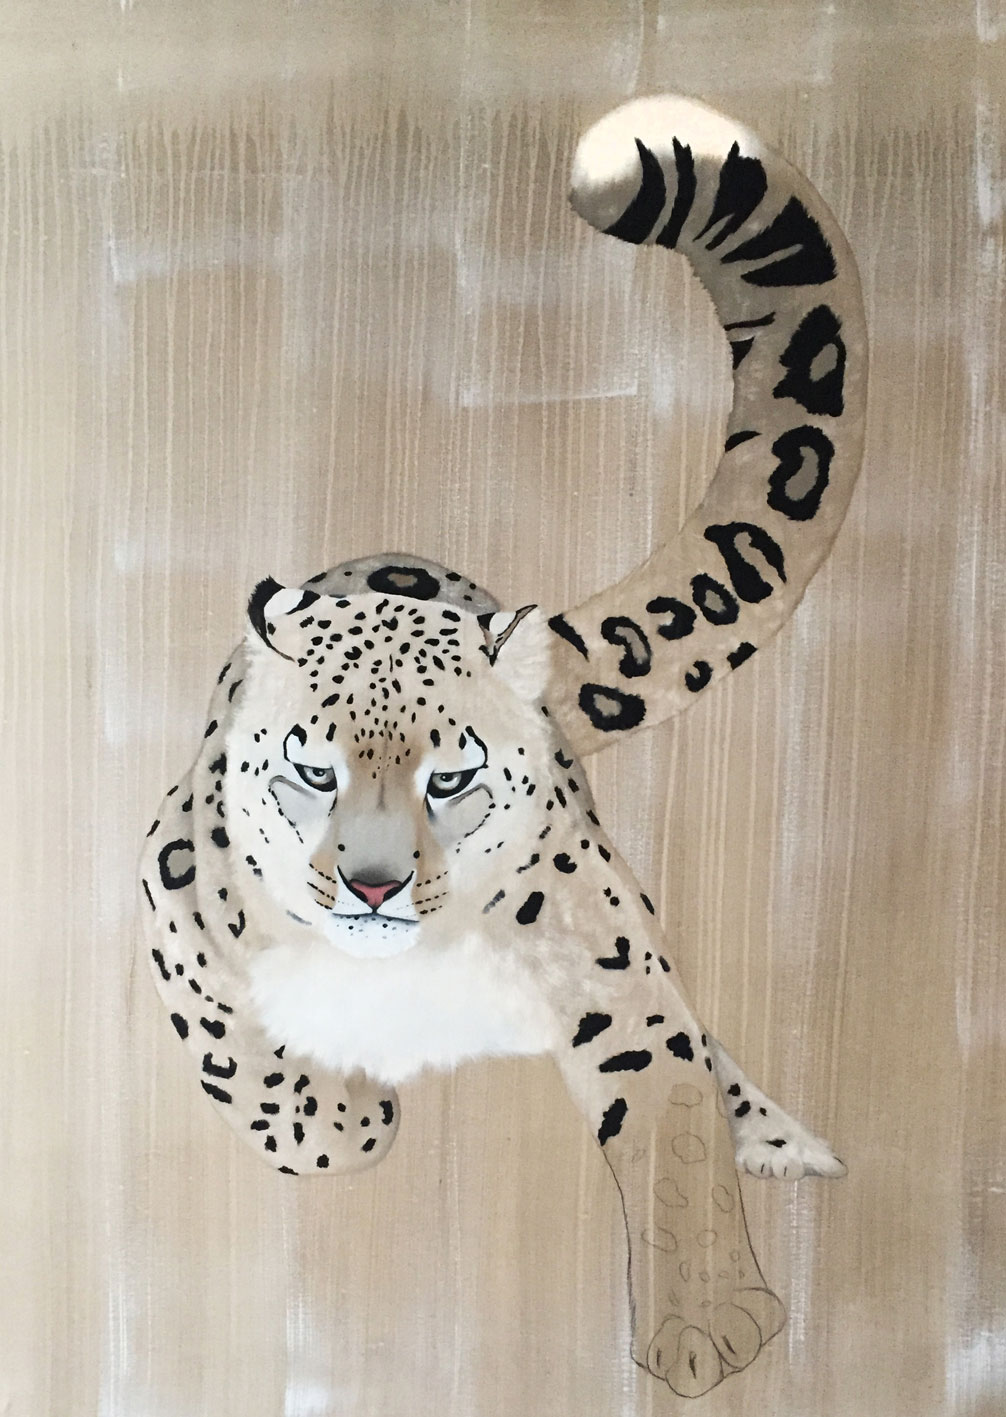 PANTHERA UNCIA panthera-uncia-snow-leaopard-ounce-delete?-threatened-endangered-extinction-thierry-bisch Animal painting by Thierry Bisch pets wildlife artist painter canvas art decoration